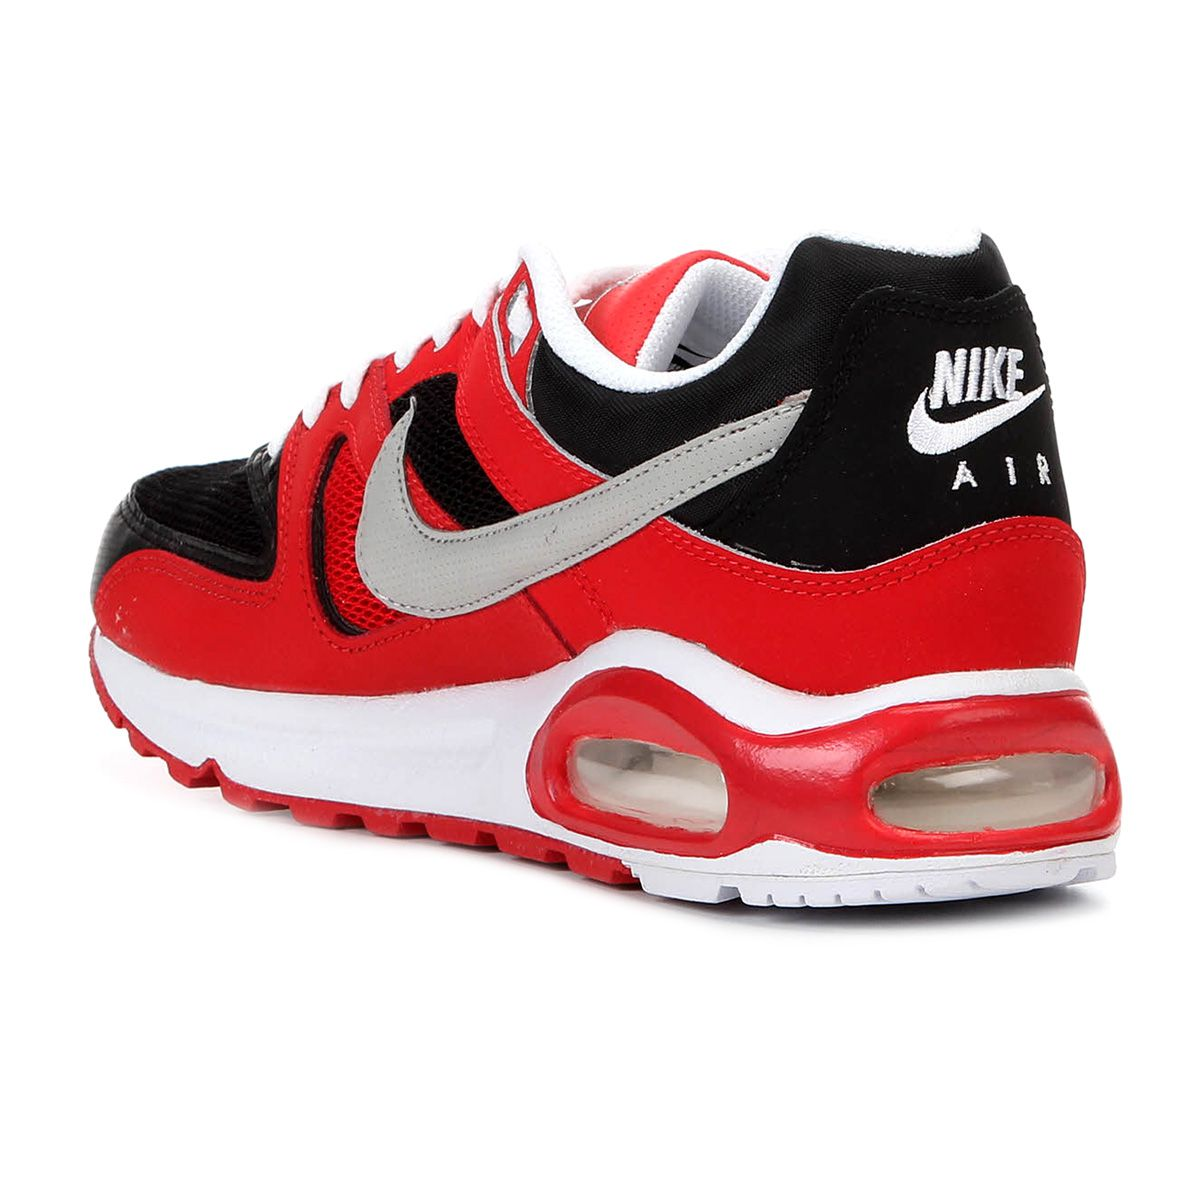 855f838c220 Tenis Nike Masculino Air Max Command Confortavel Original